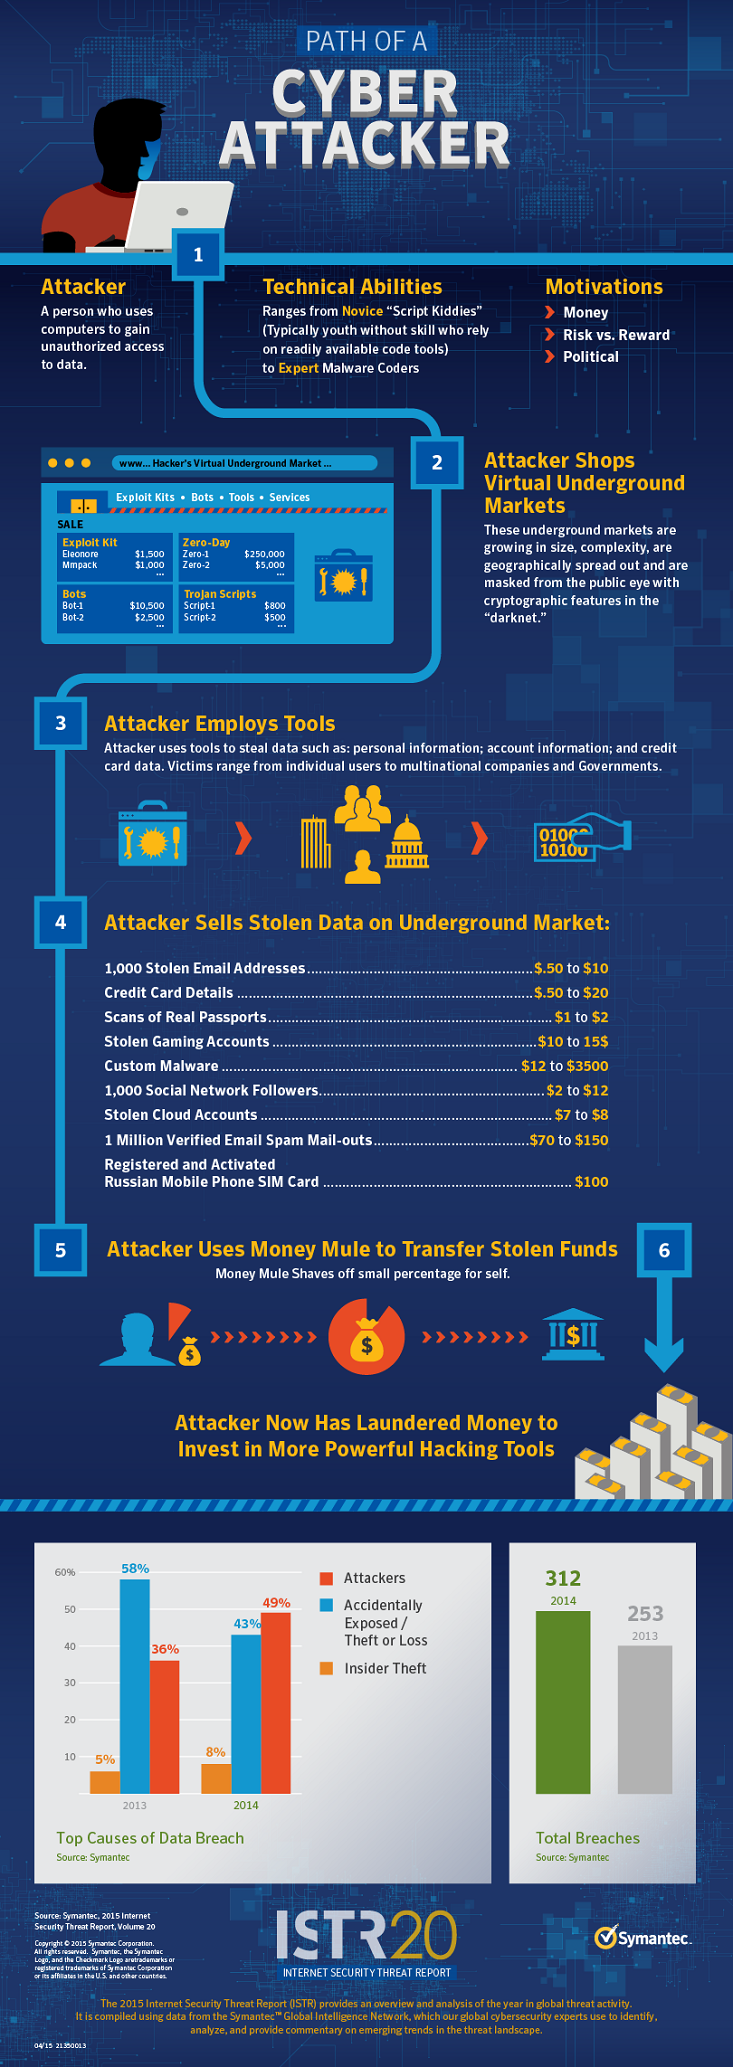 path of a cyber attacker